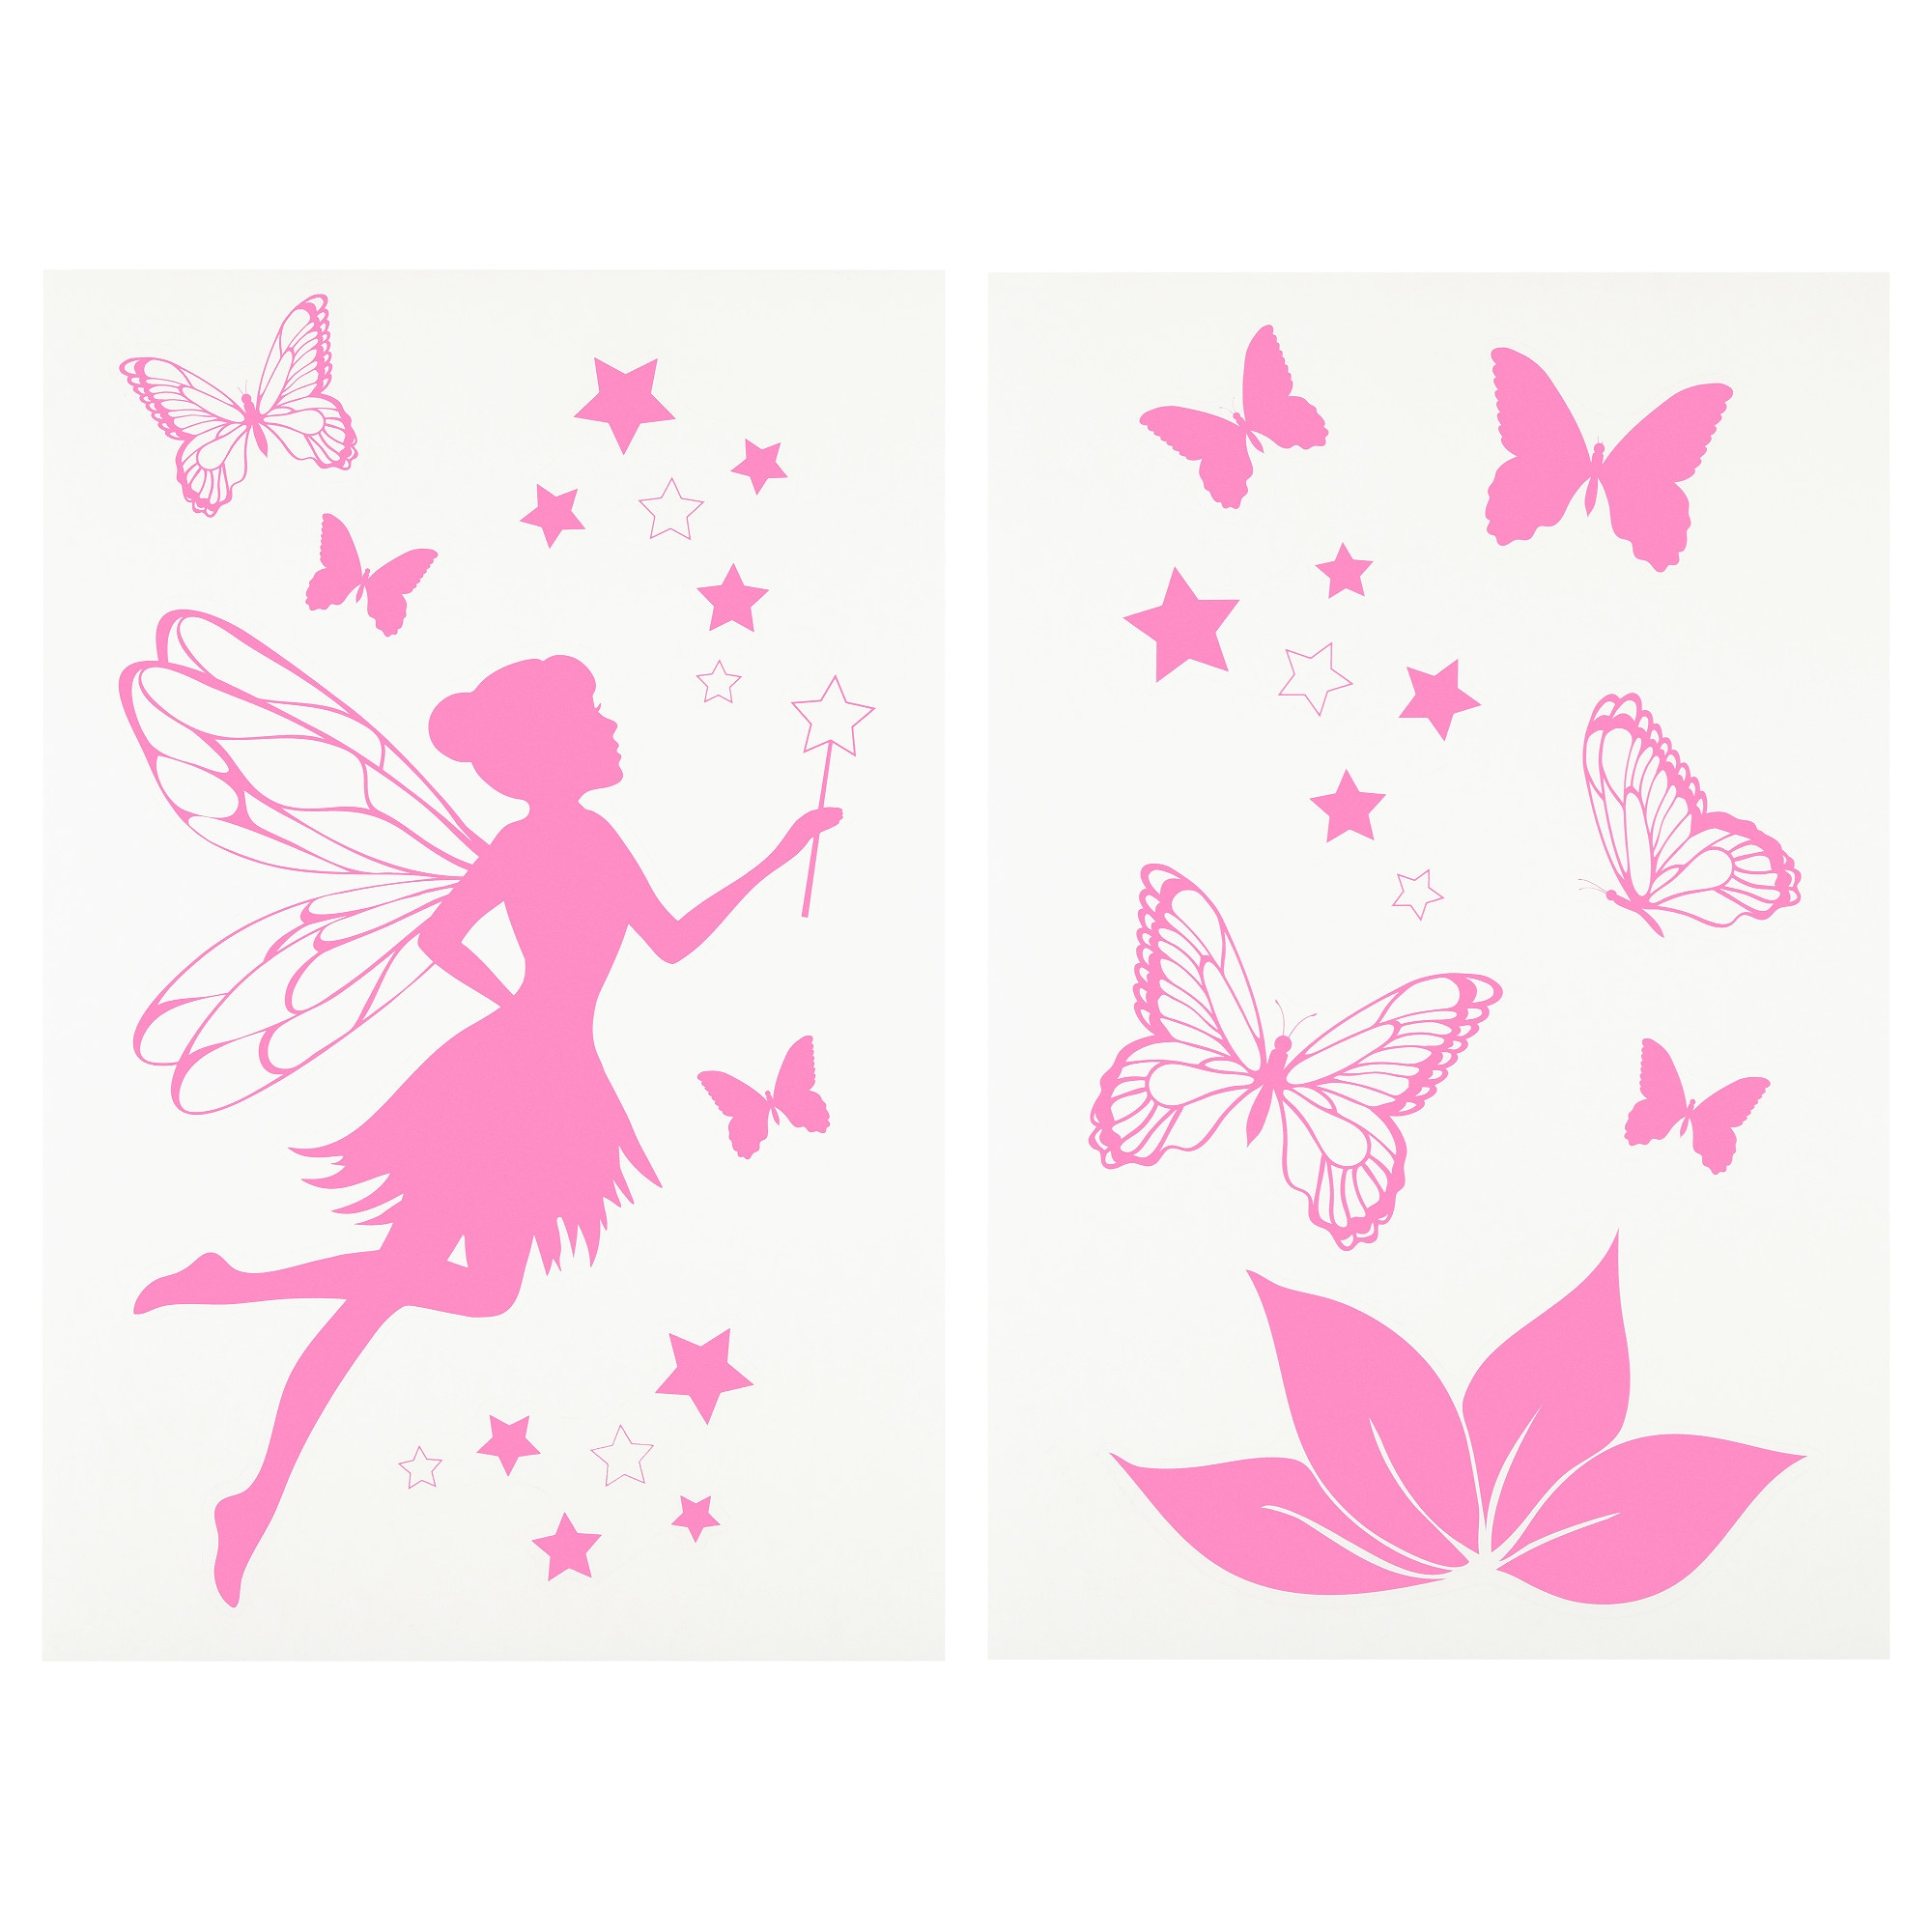 Beau stickers deco chambre fille for Ikea stickers chambre